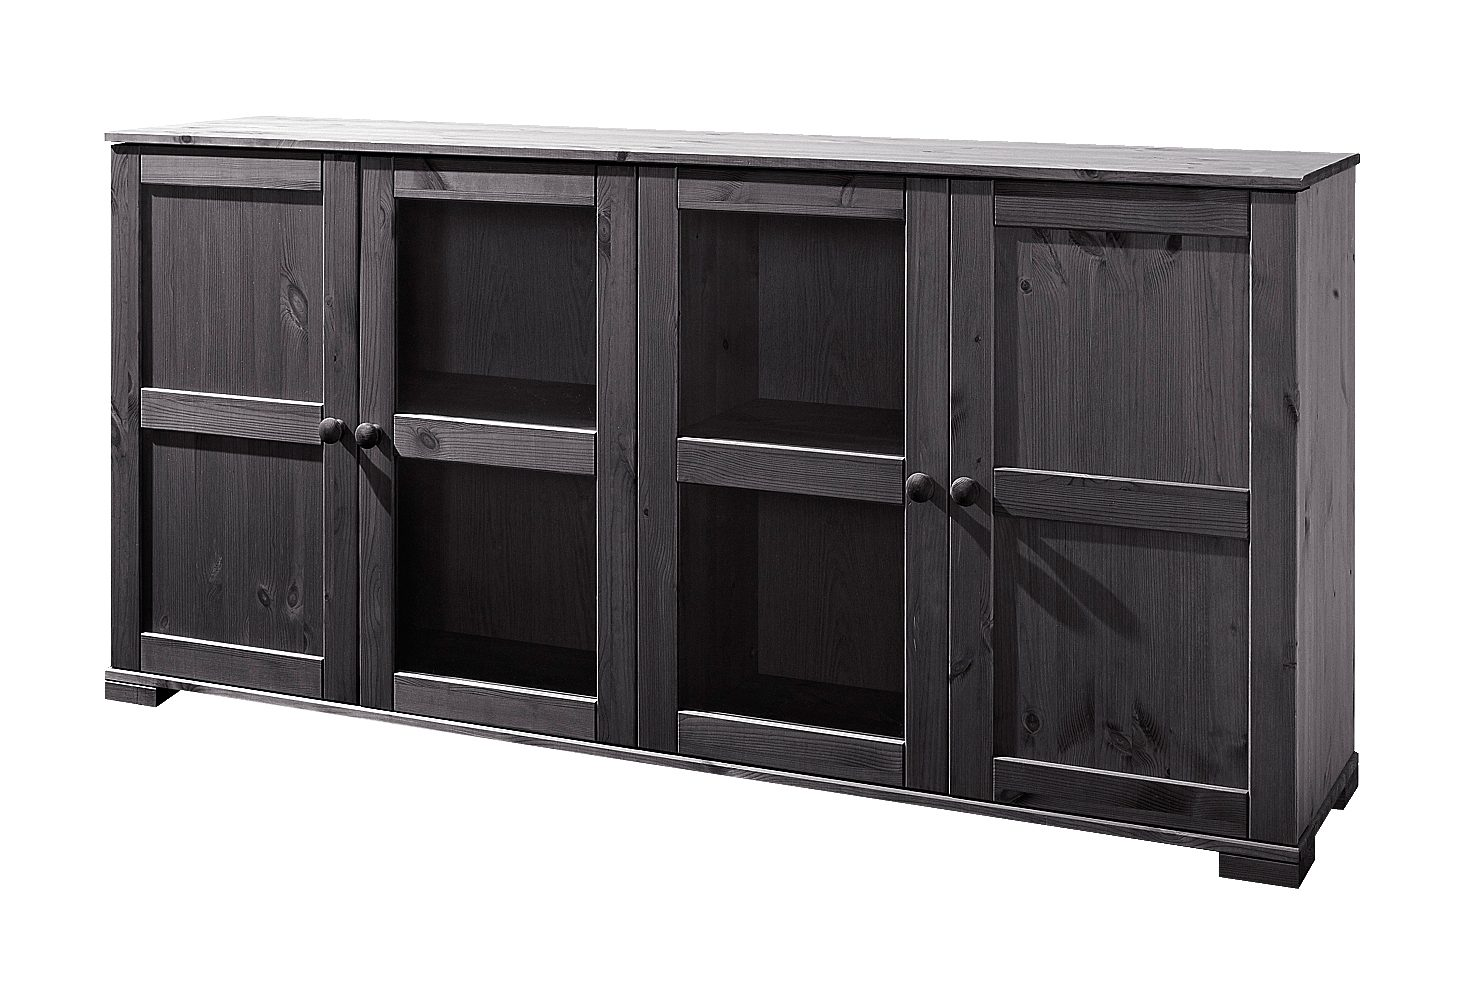 Sideboard, Home affaire, Breite 166 cm, Höhe 79 cm